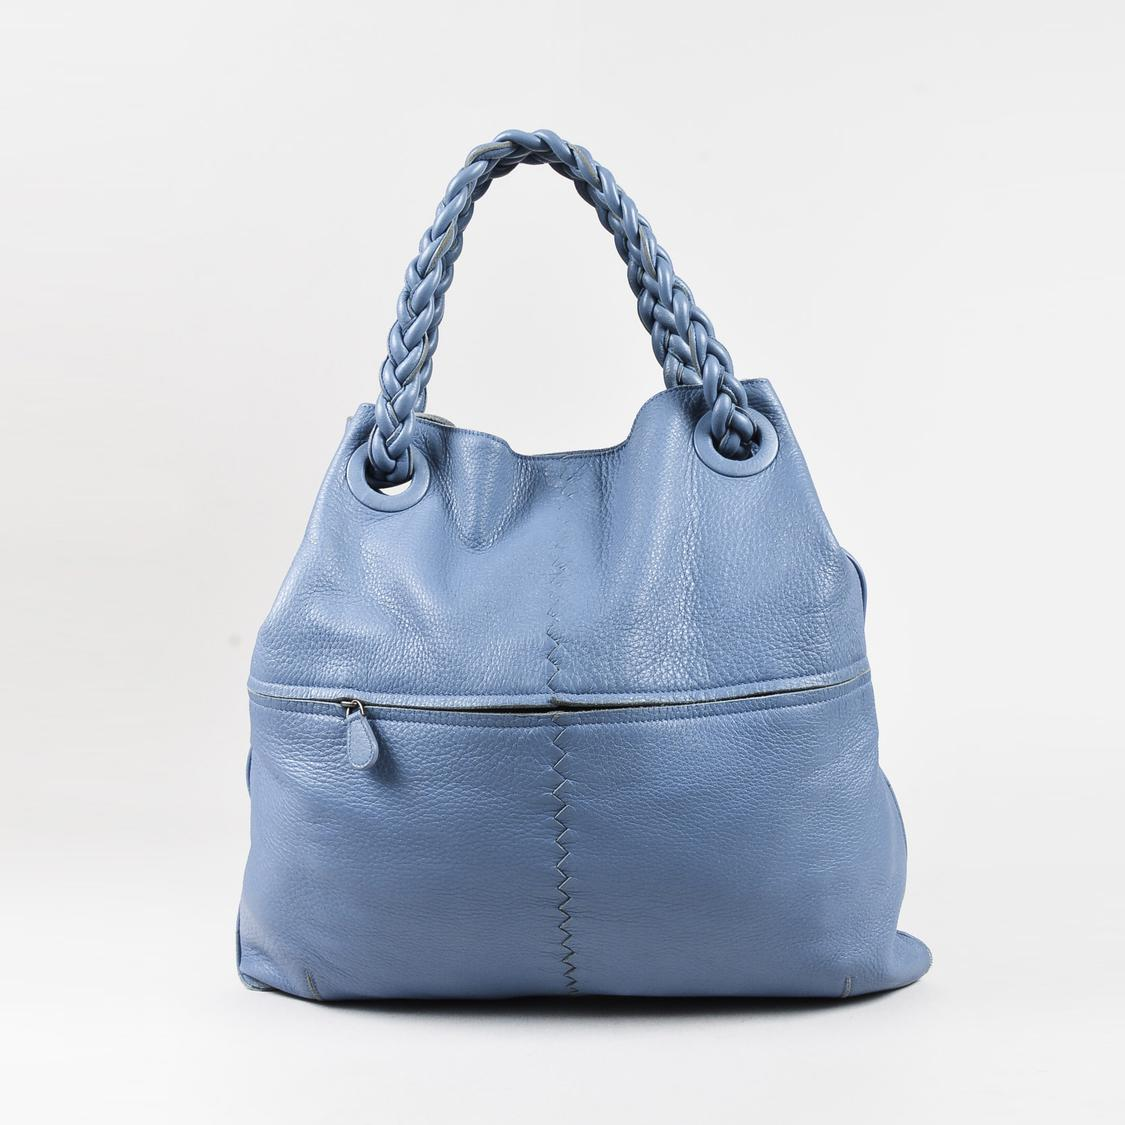 Bottega Veneta. Women s Light Blue Braided Handle Oversized Leather Tote 852b418eb2